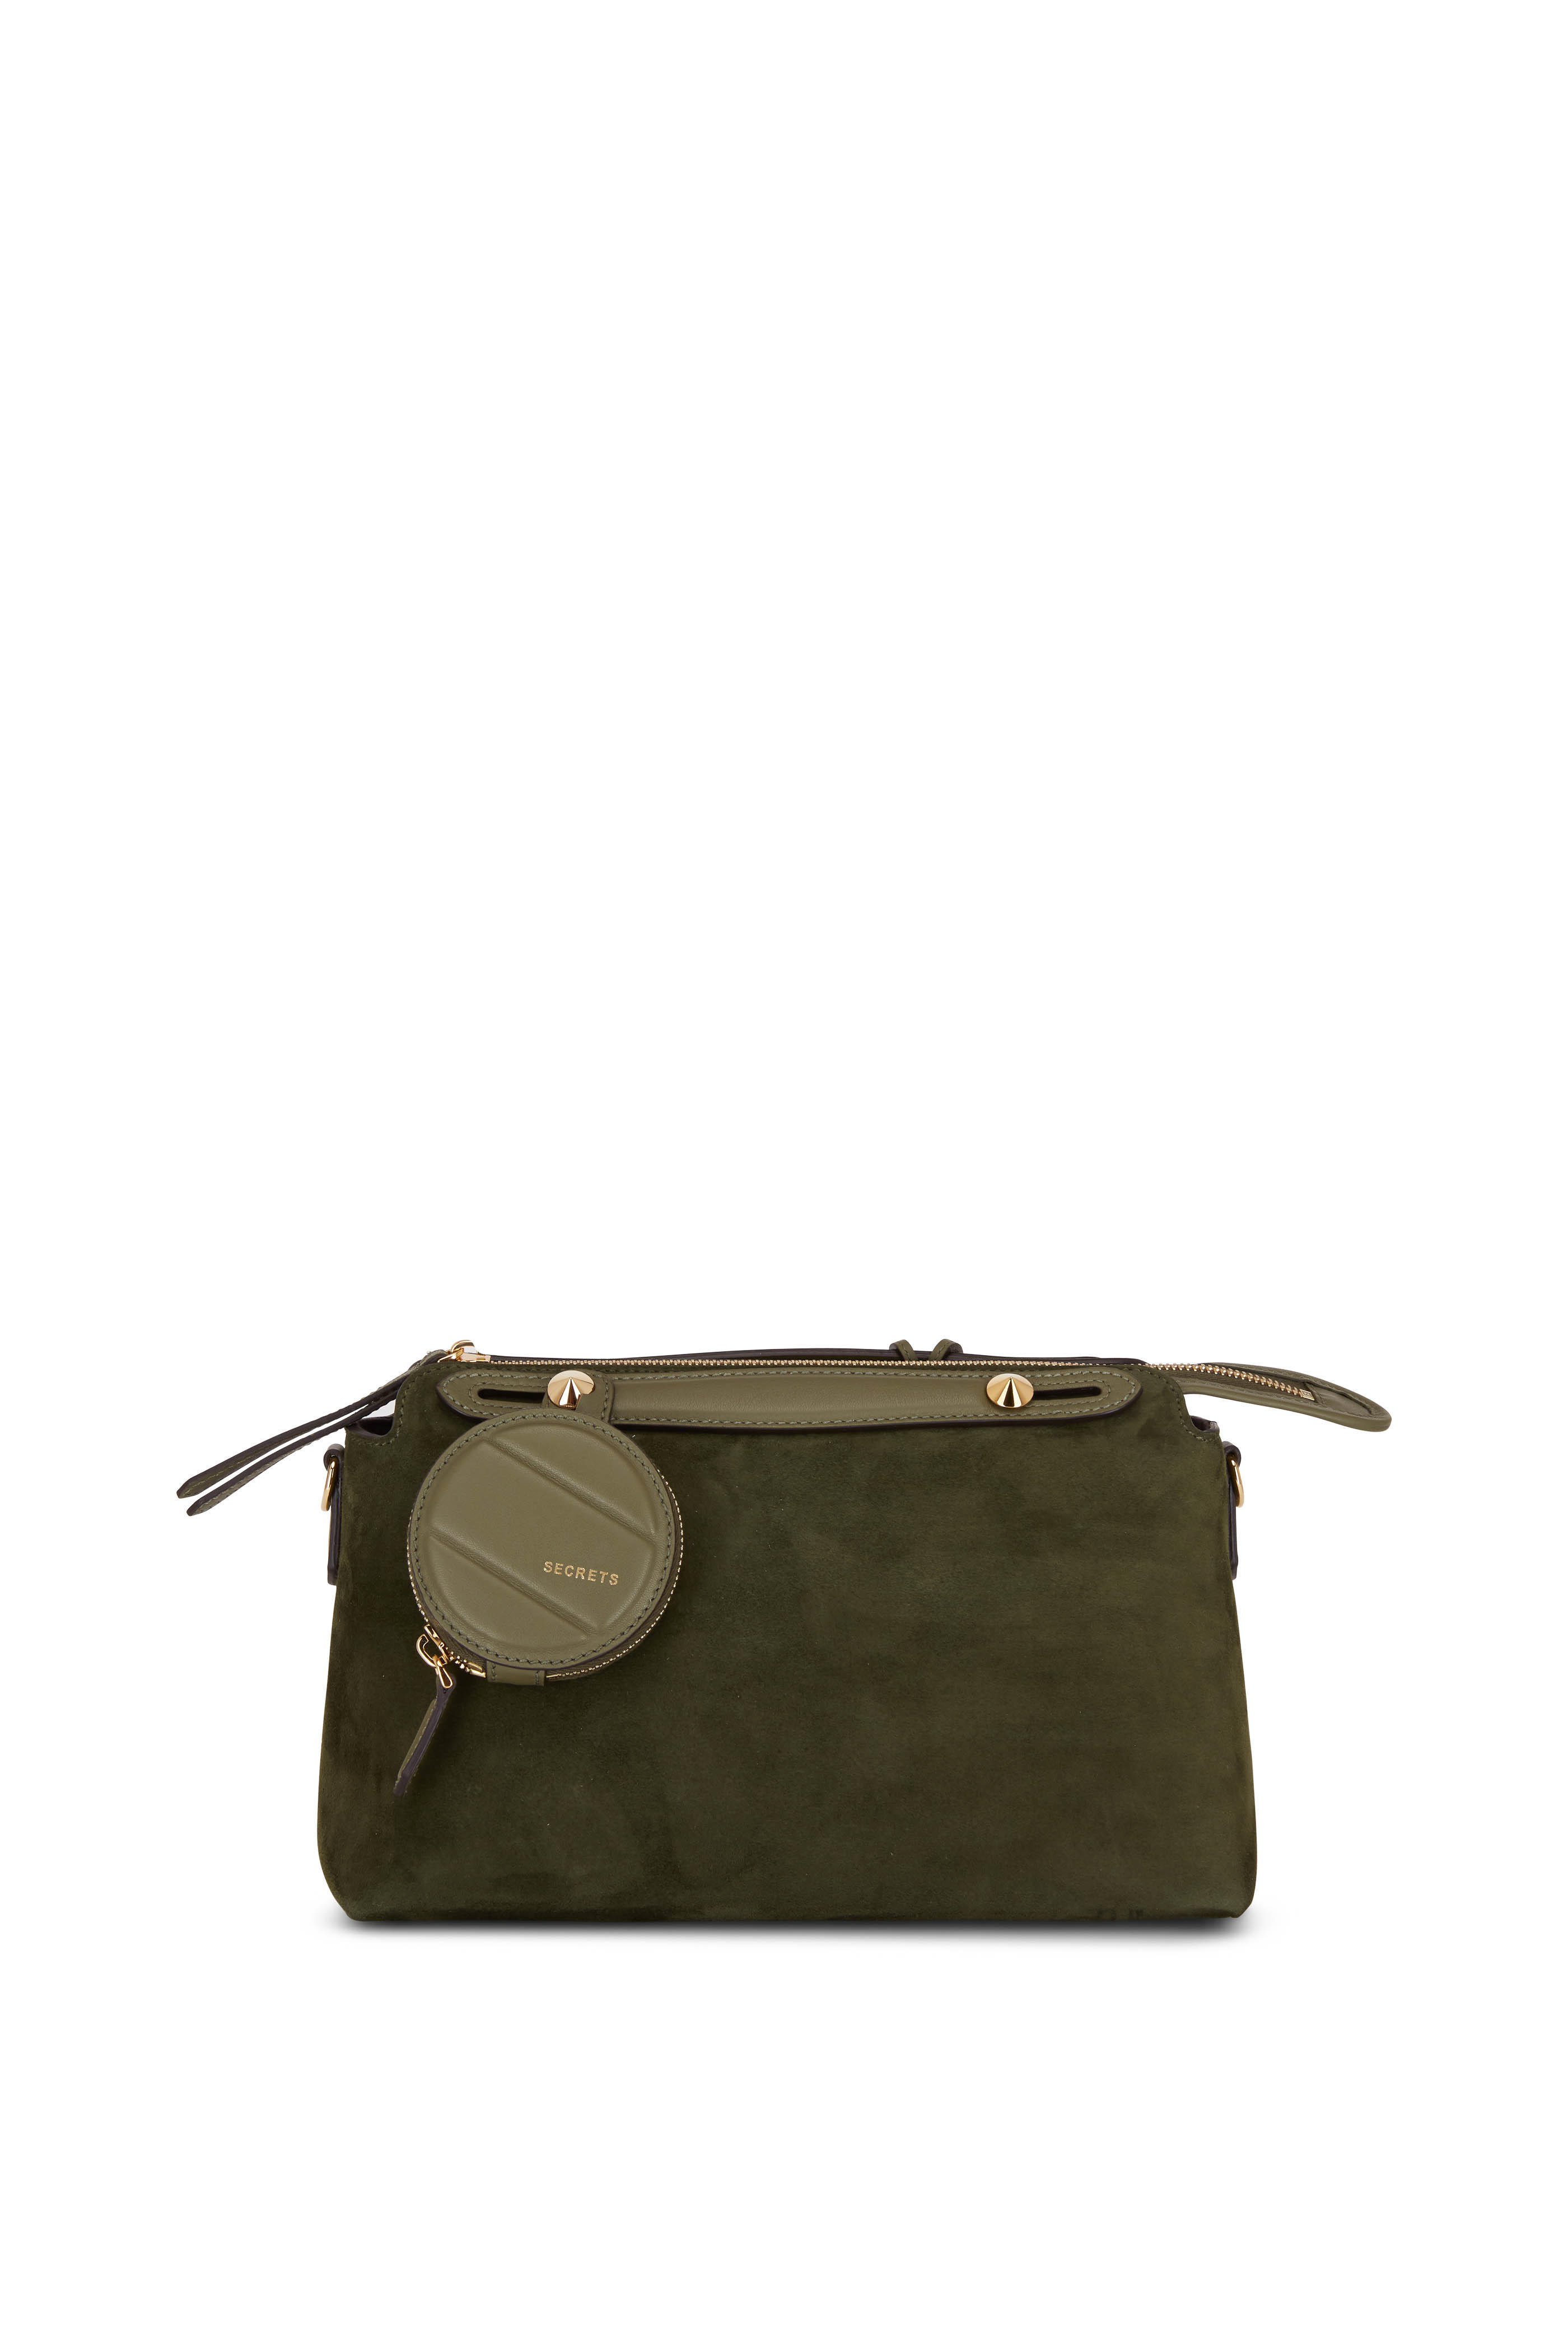 2d61fe8ad1 Fendi - By The Way Green Suede Medium Boston Bag | Mitchell Stores